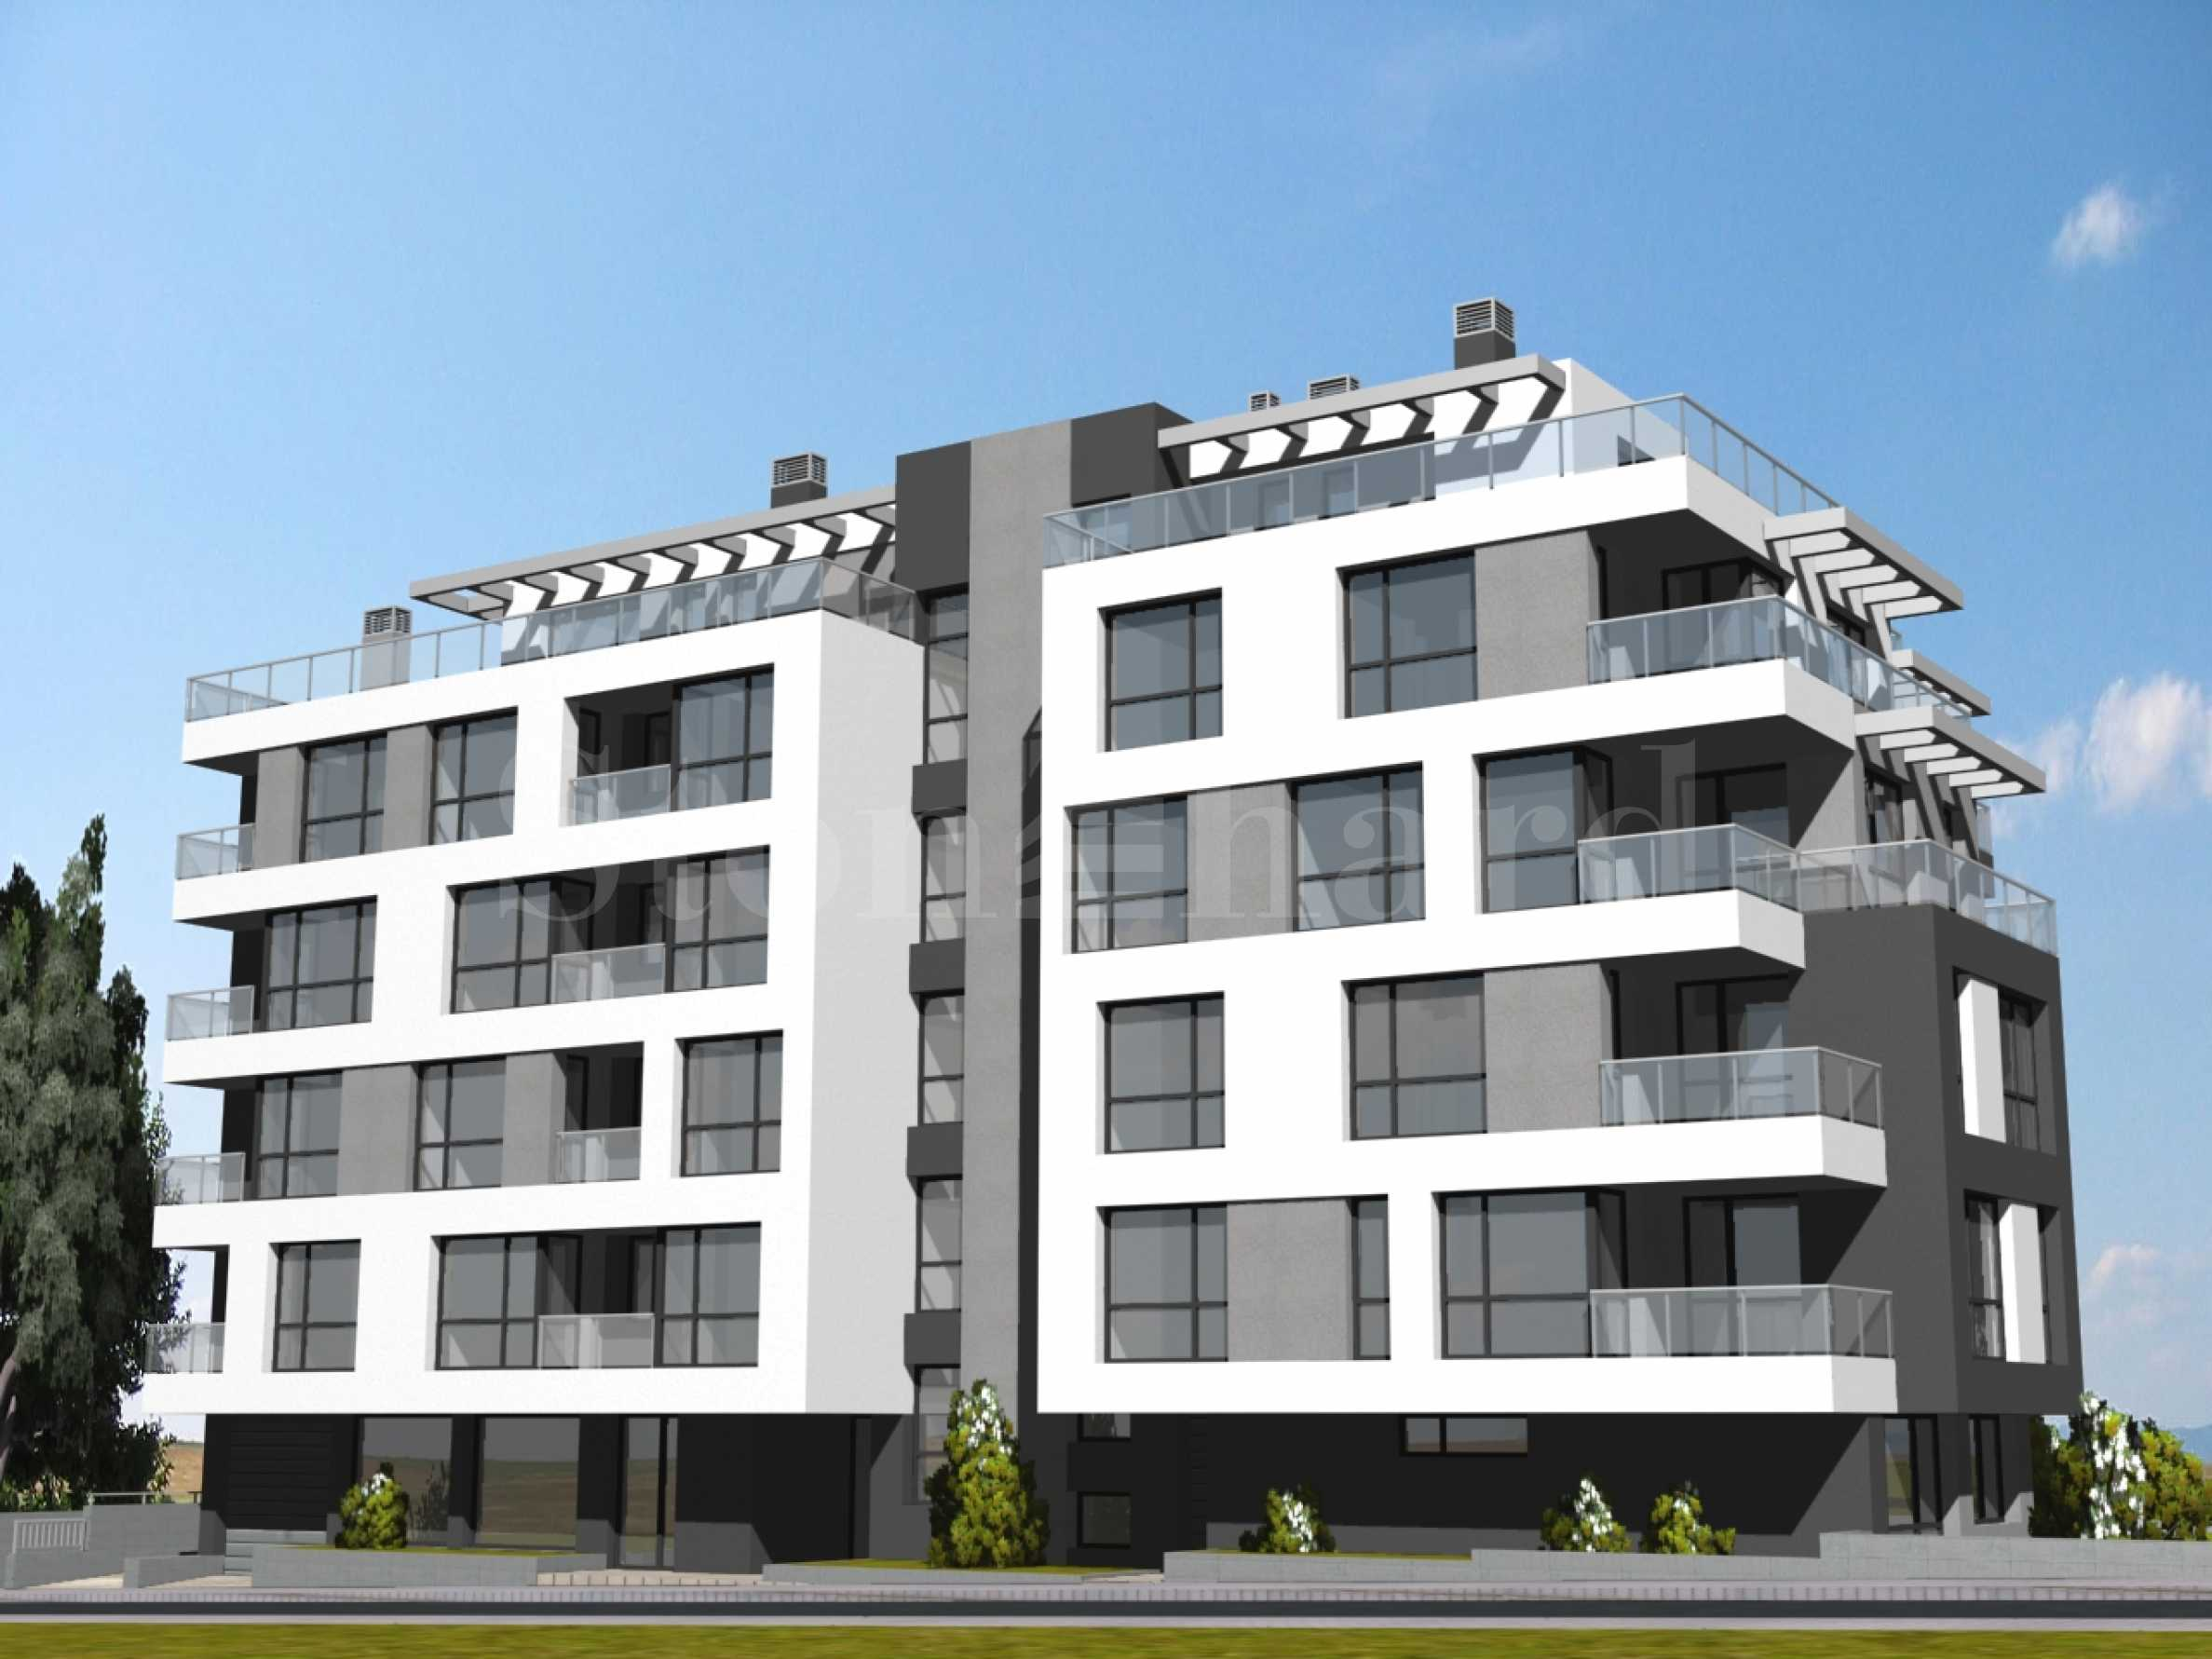 New building near future metro station in Vitosha1 - Stonehard